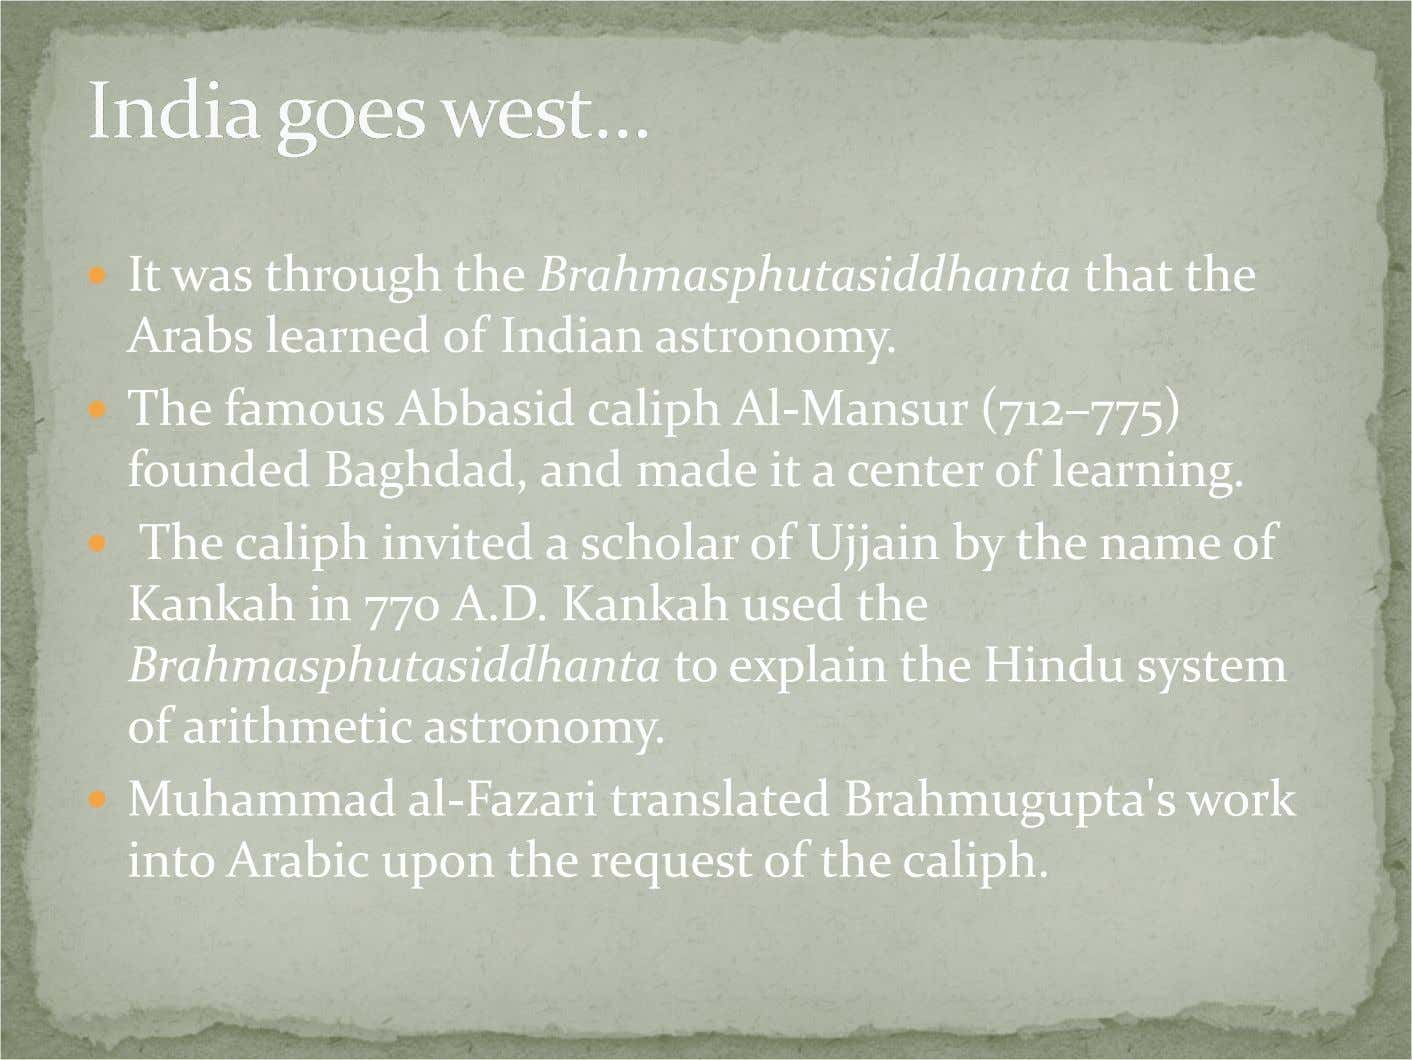 It was through the Brahmasphutasiddhanta that the Arabs learned of Indian astronomy. The famous Abbasid